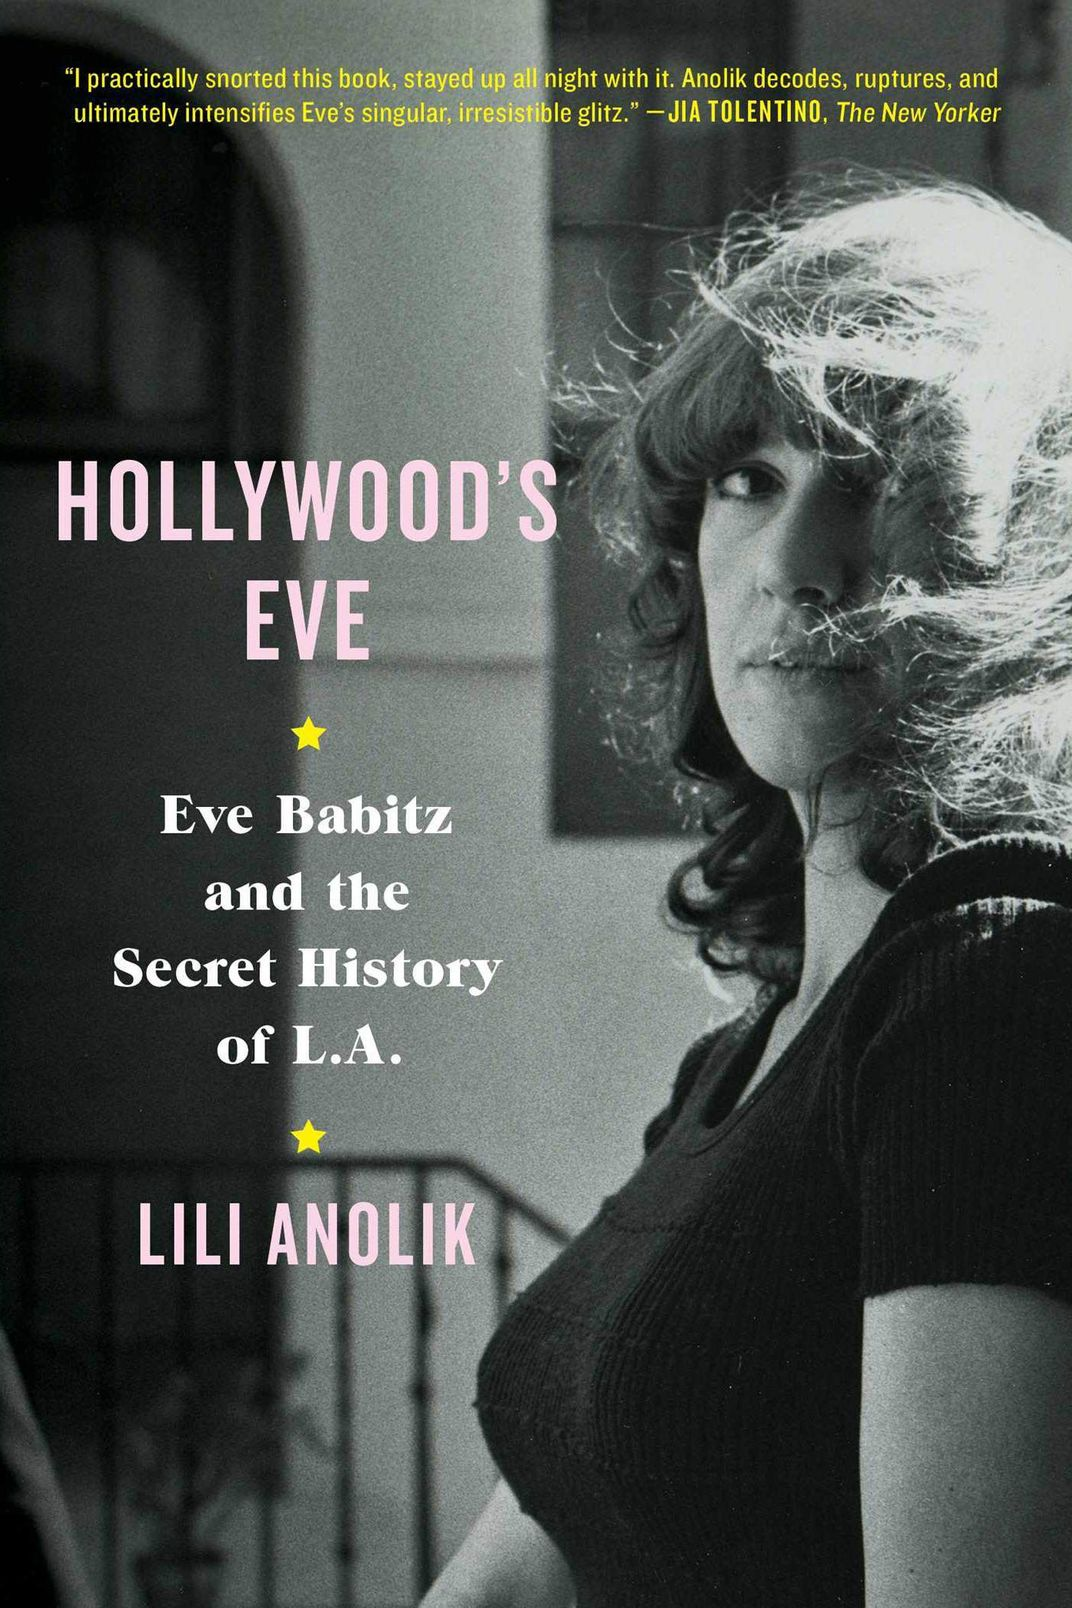 Hollywood's Eve: Eve Babitz and the Secret History of L.A., by Lili Anolik (Scribner, Jan. 8)